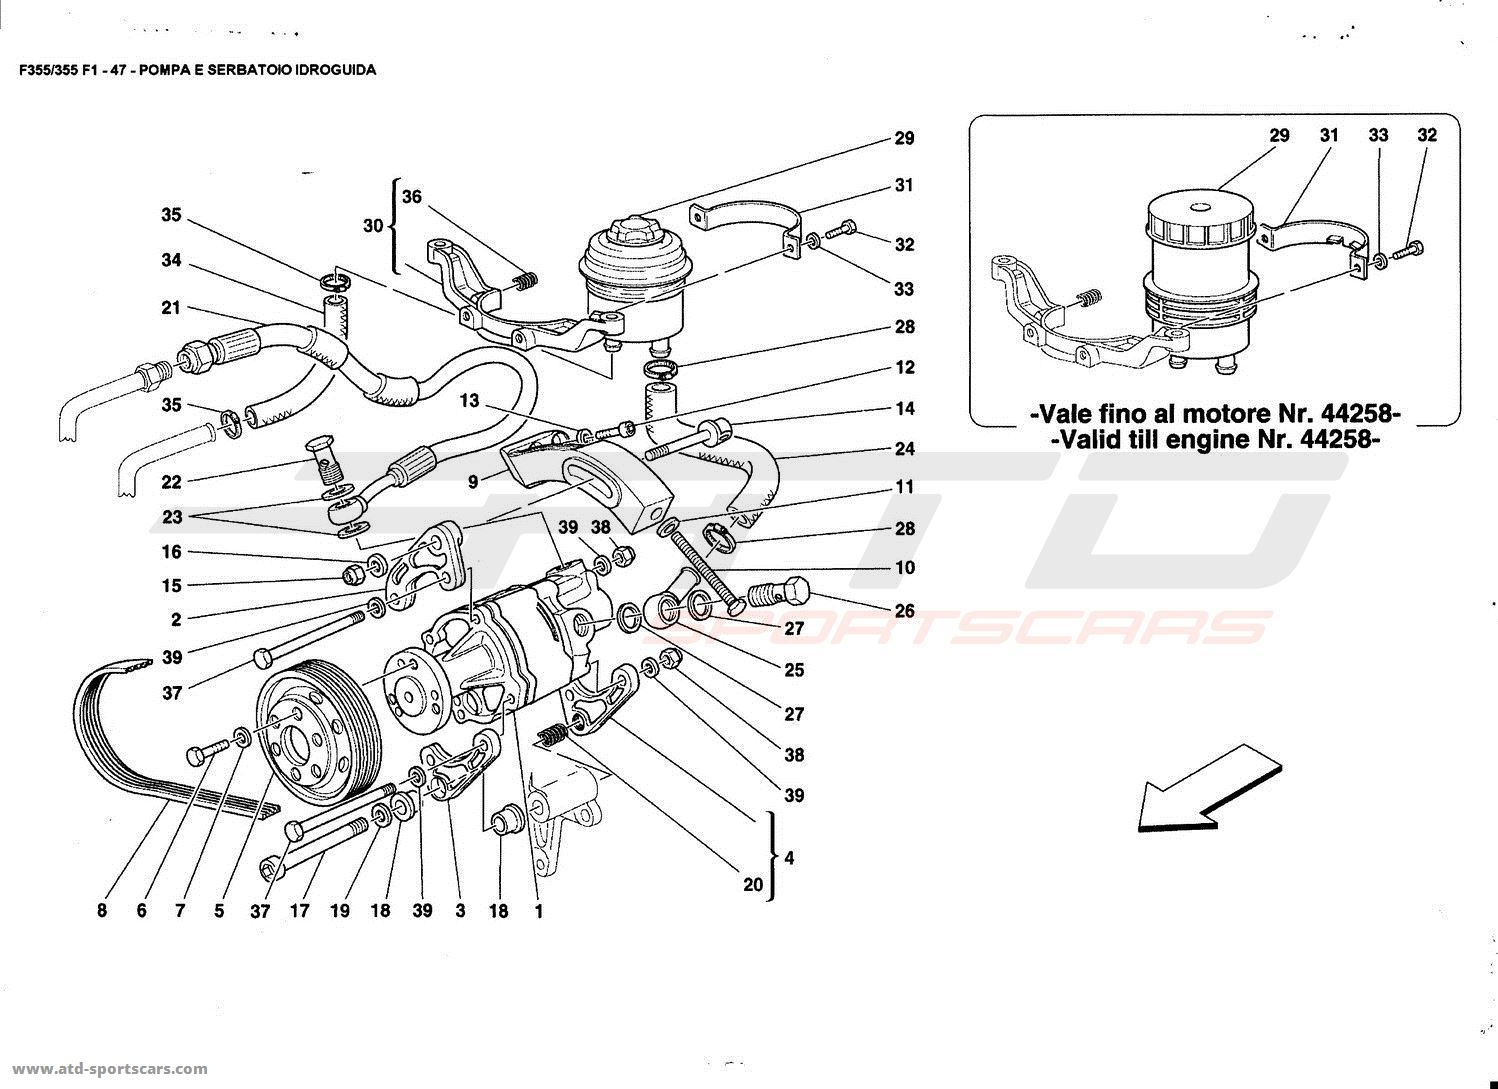 Ferrari F355 5 2 Et F1 Hydraulic Steering Pump And Tank